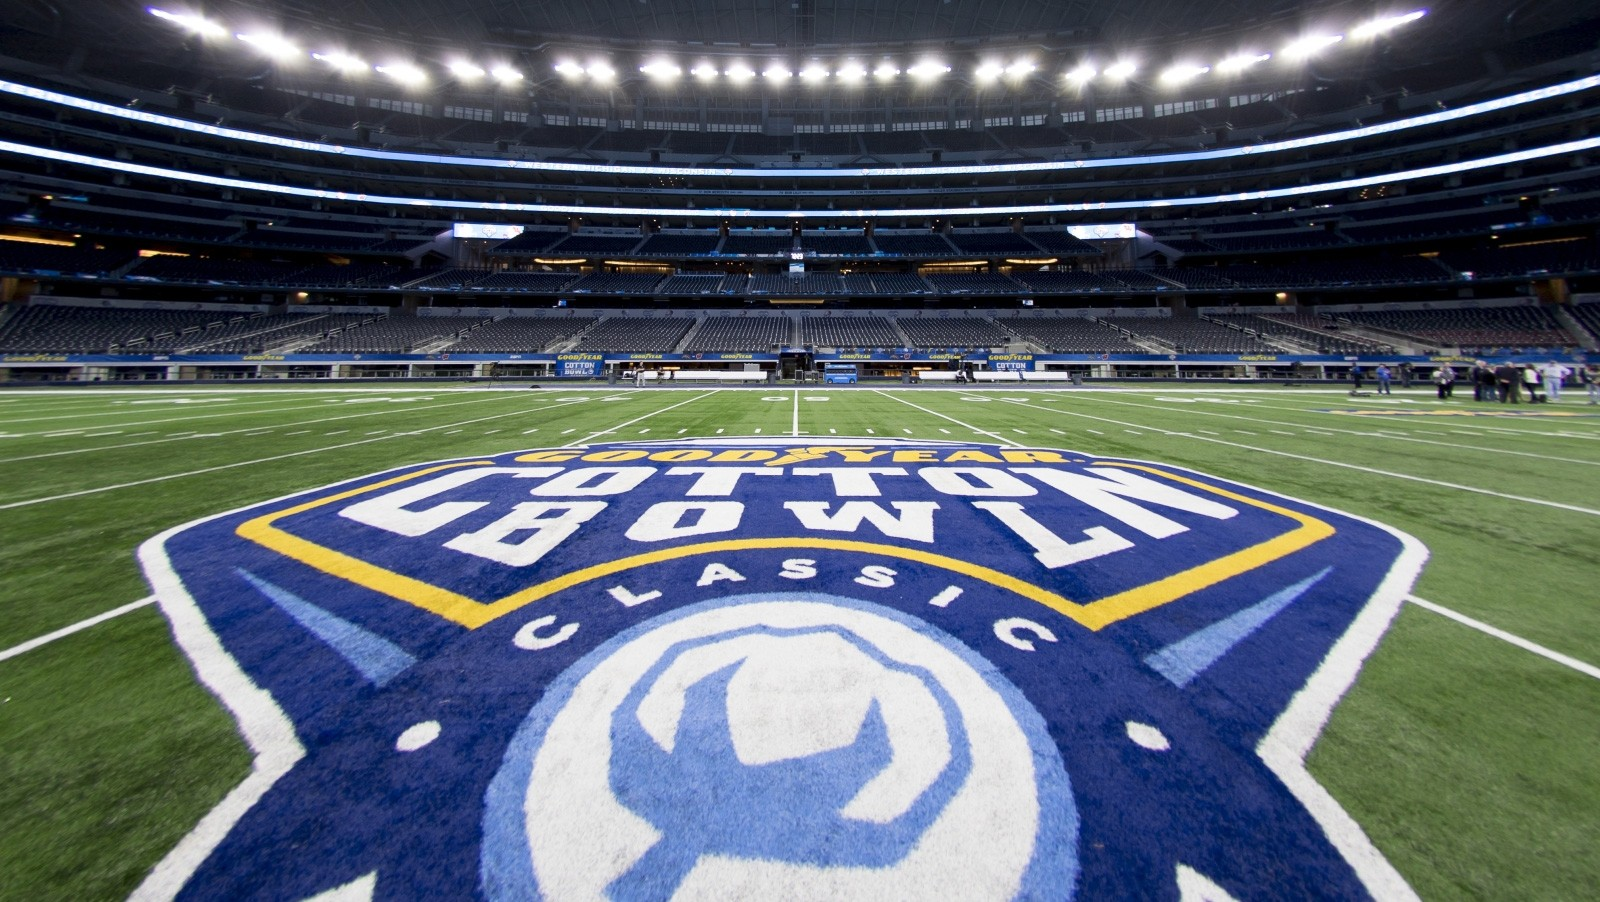 New year's six bowl odds: Cotton bowl kicks off weekend action